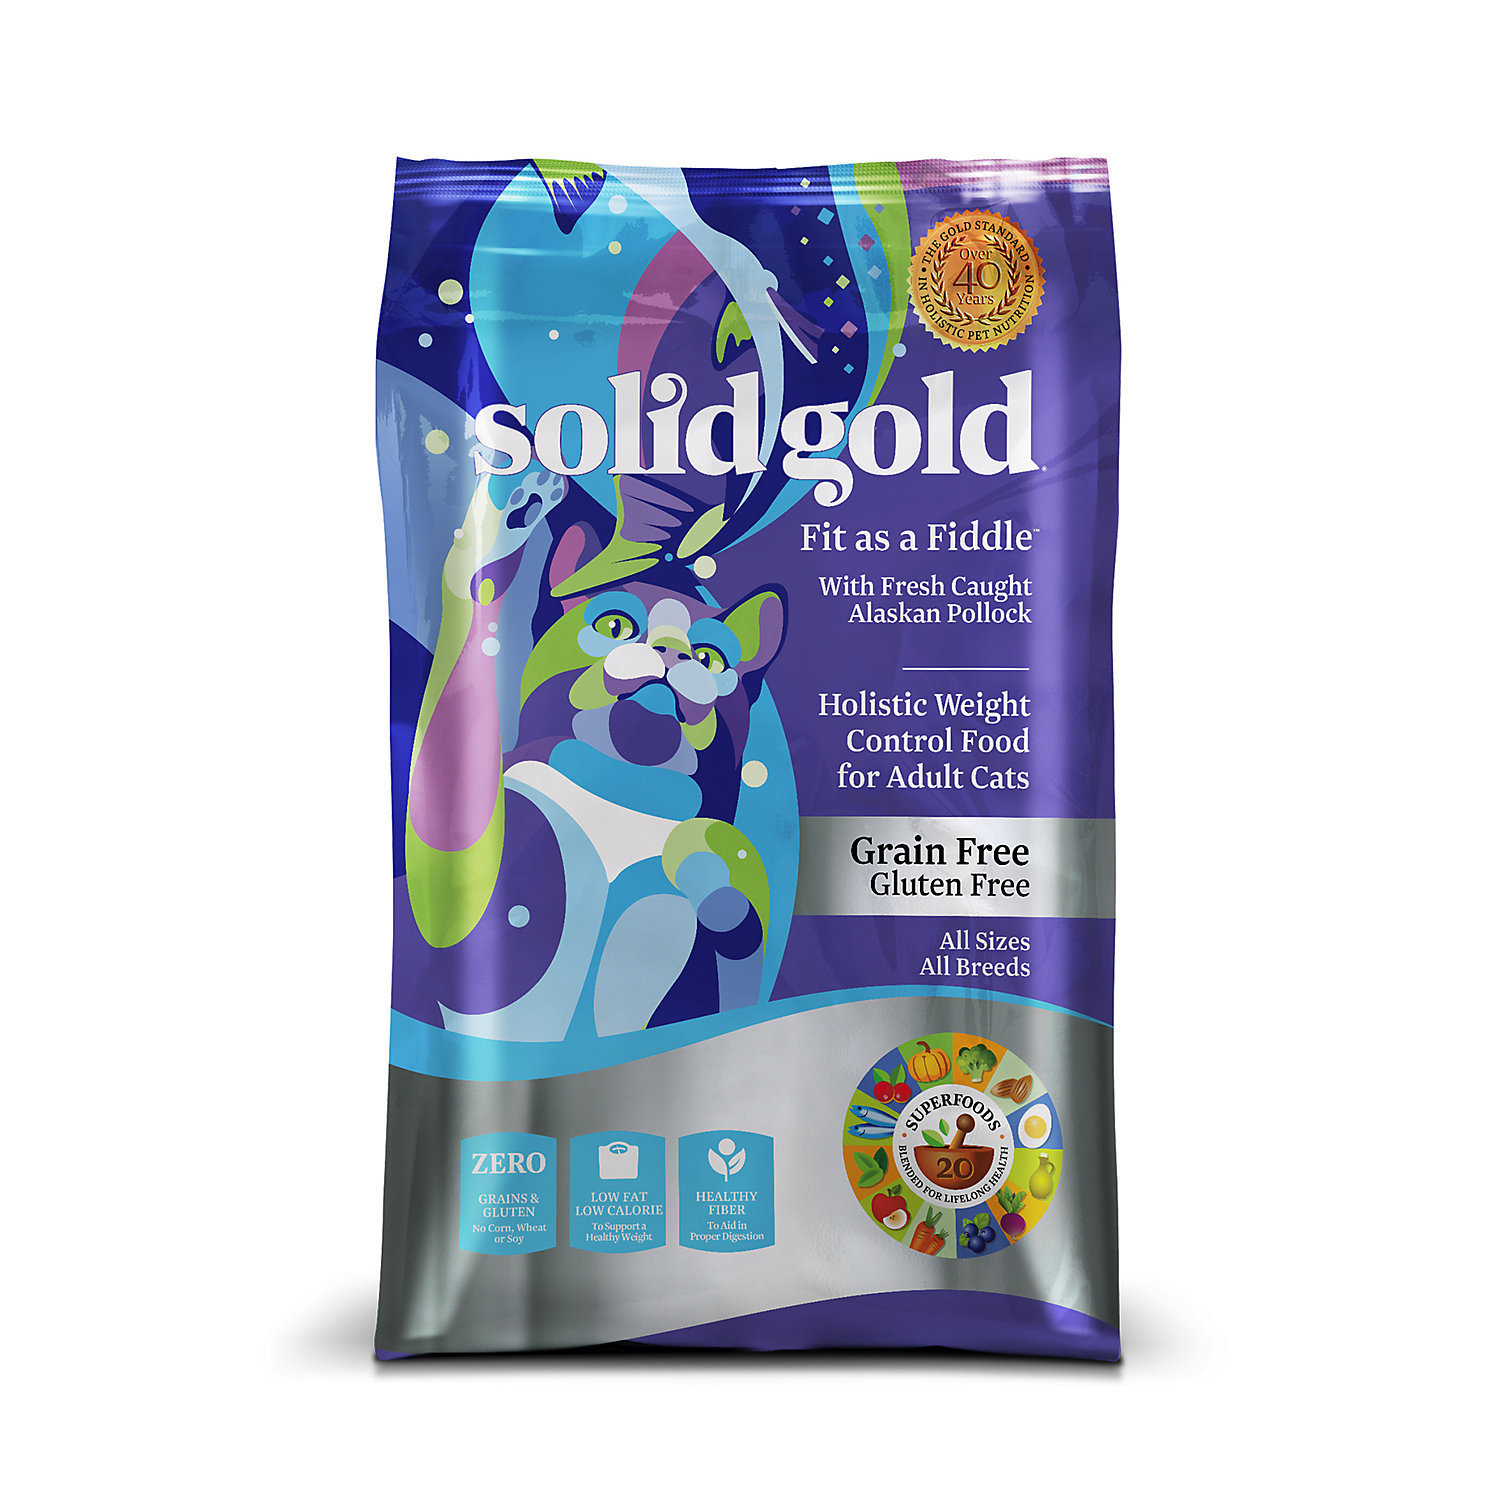 Solid Gold Fit As A Fiddle Alaskan Pollock Weight Control Adult Dry Cat Food, 3 lbs. (9/18)  (A.J3)